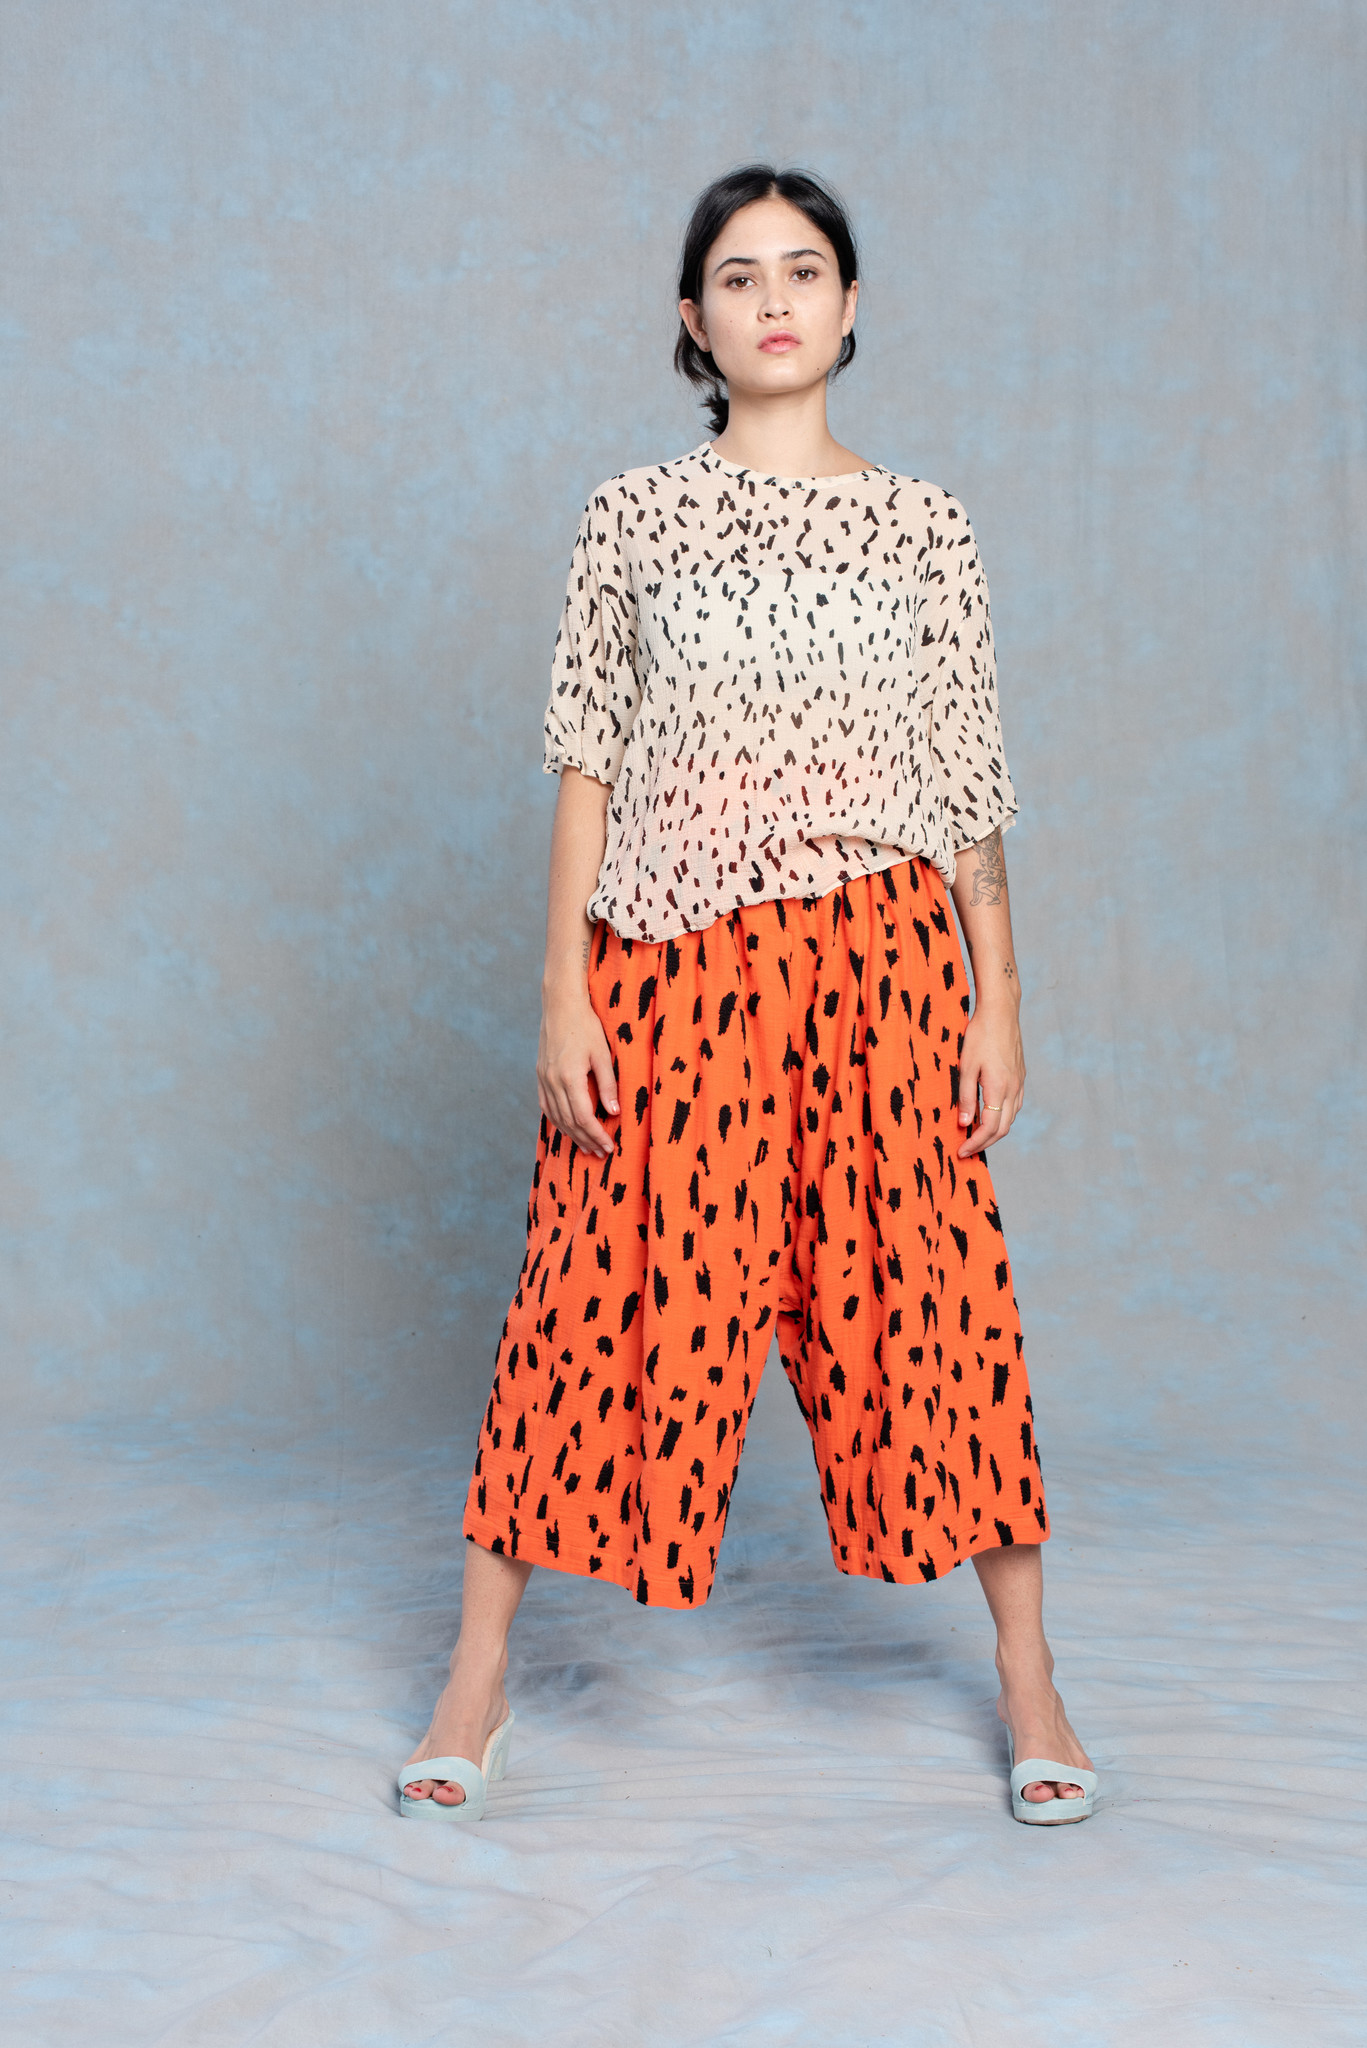 Anntian Tshirt Softi 66-07-M One Size Fits All